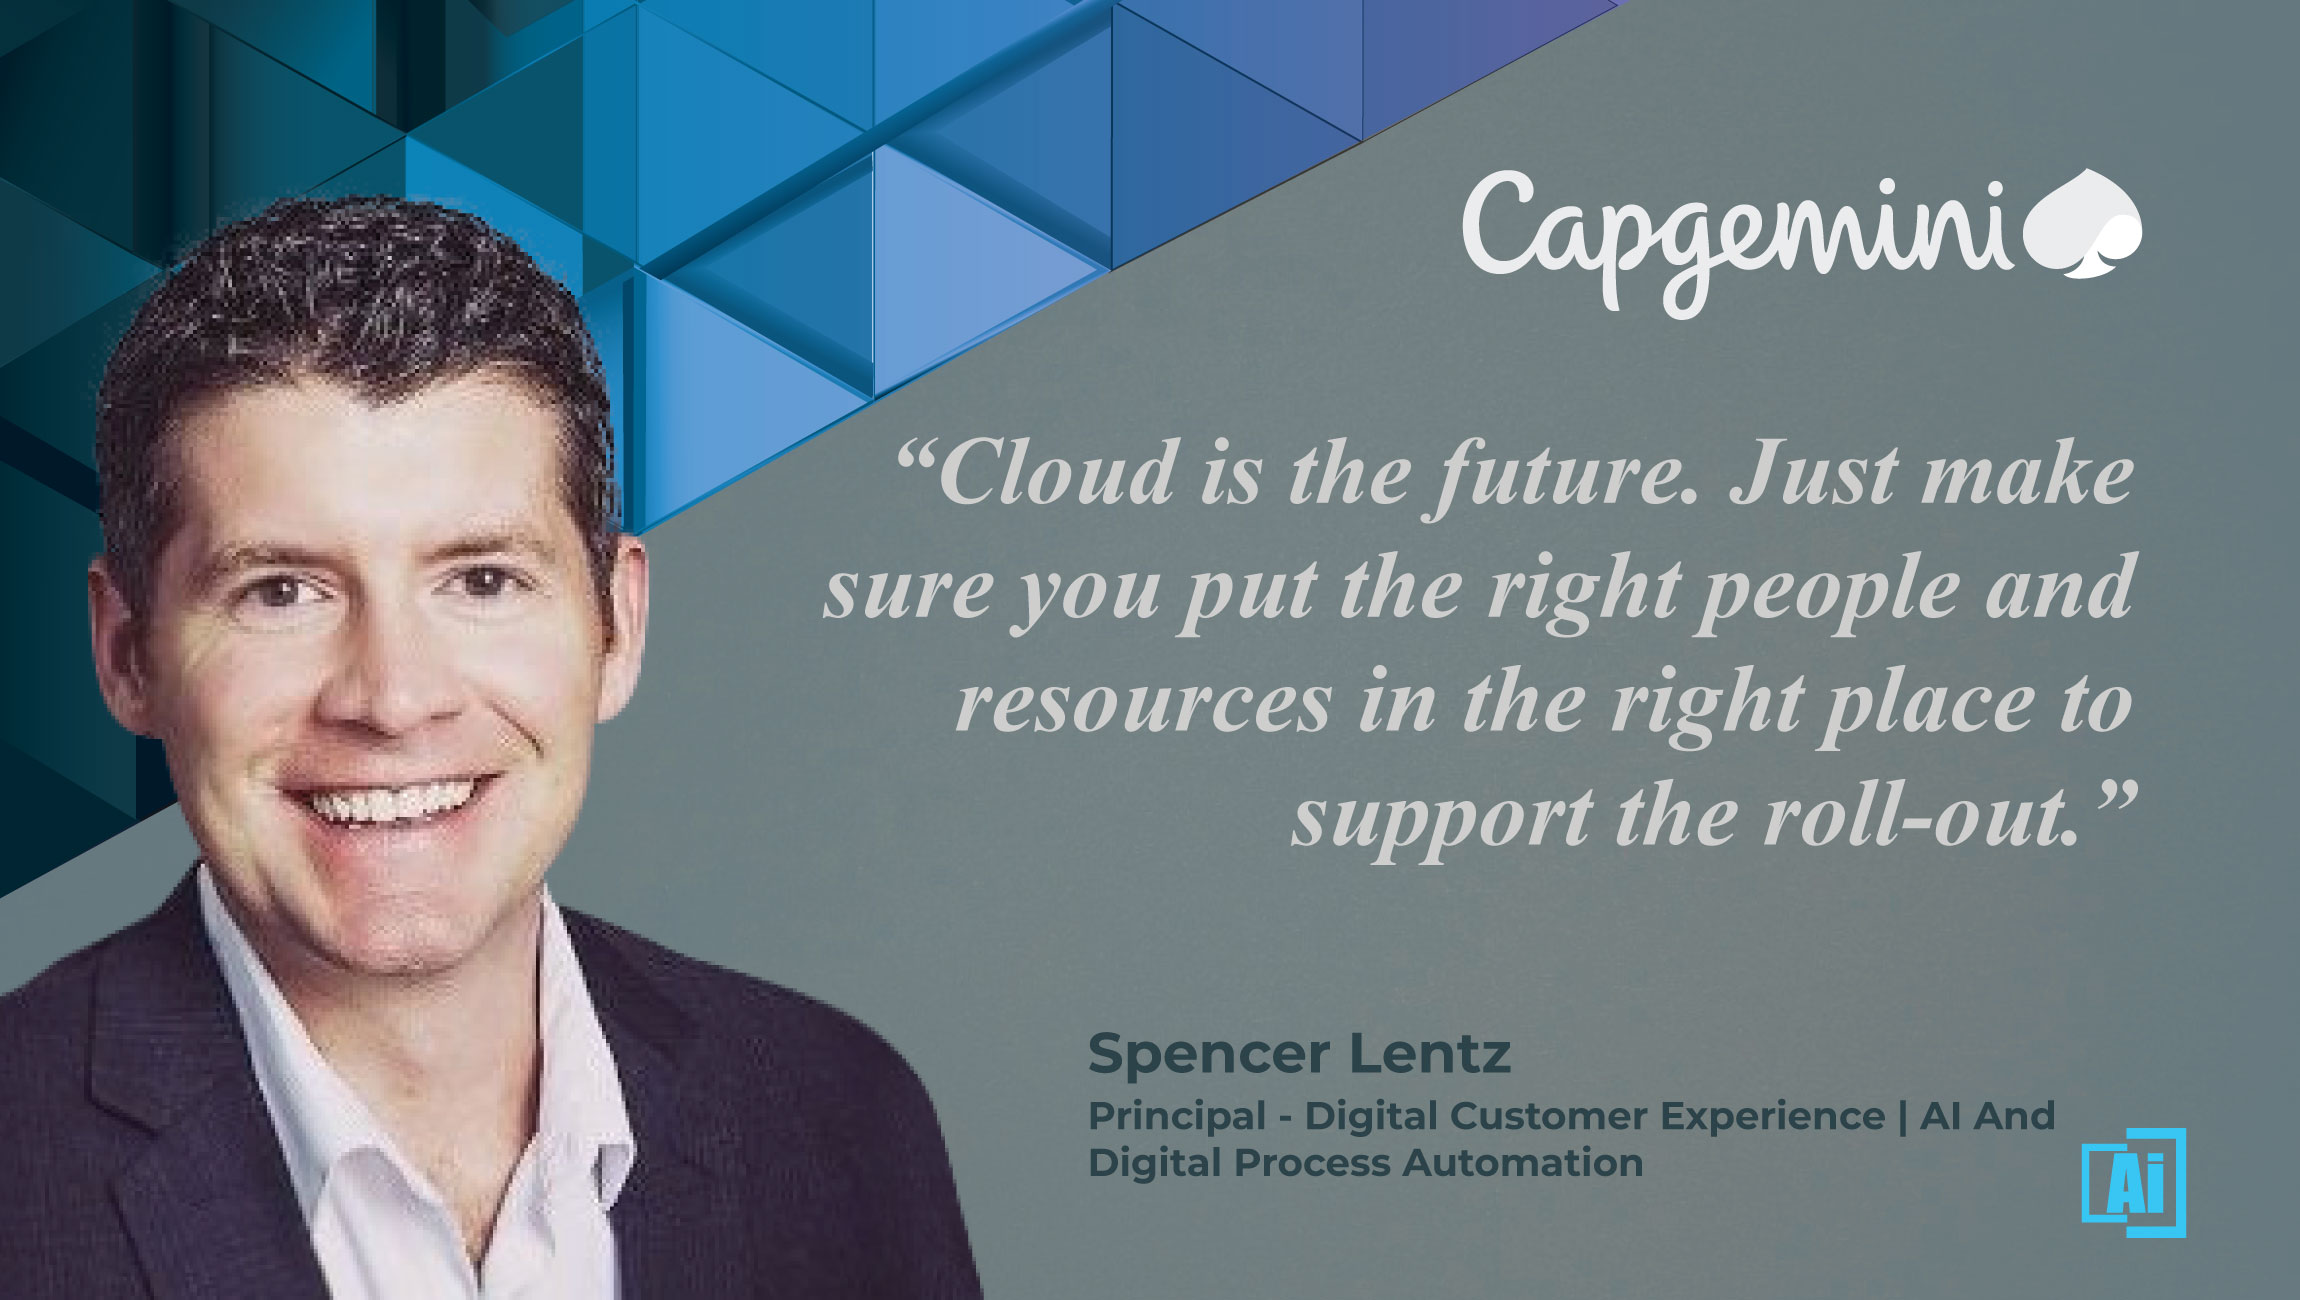 AiThority Interview with Spencer Lentz, Principal, AI and Digital Process Automation, Digital Customer Experience at Capgemini North America